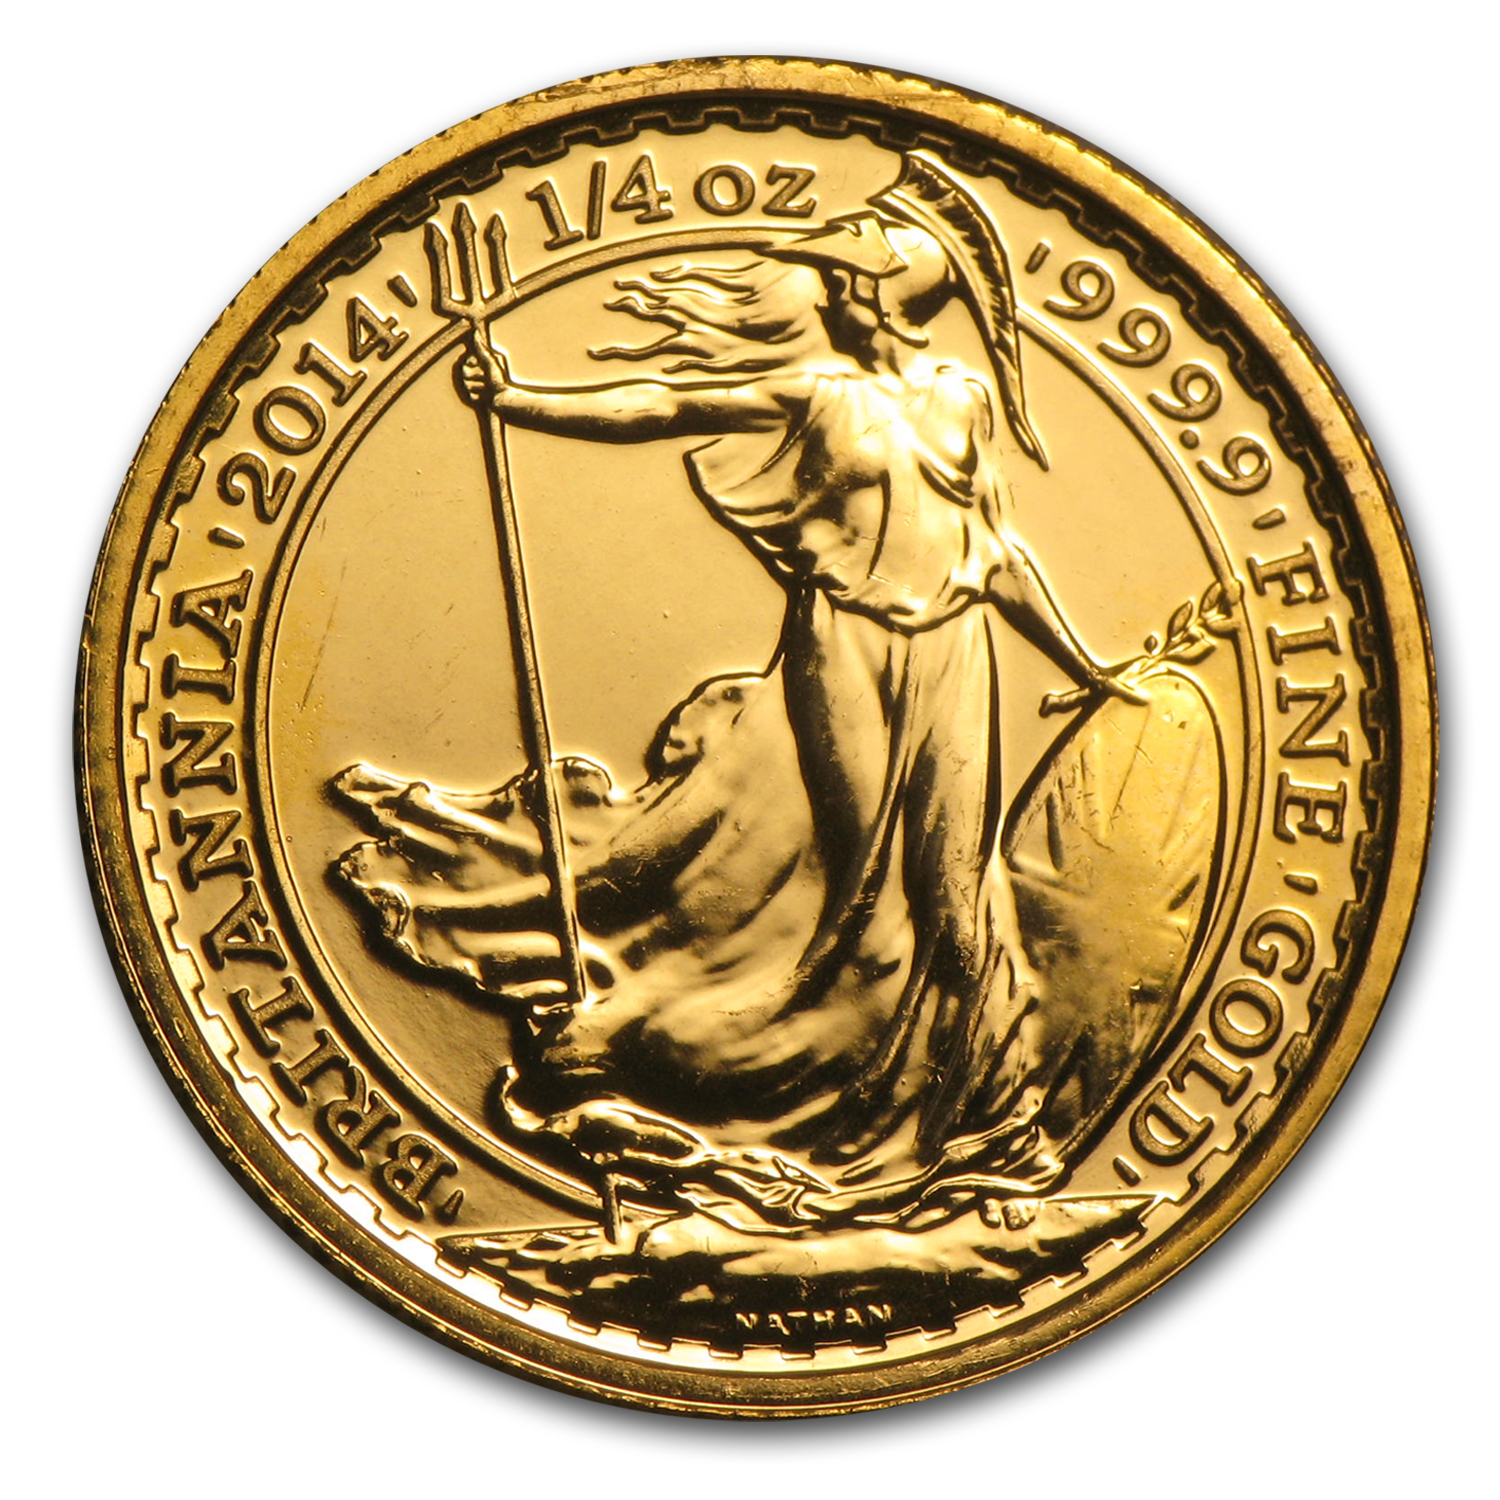 Great Britain 1/4 oz Gold Britannia BU/Prf (Random Yr, Abrasions)